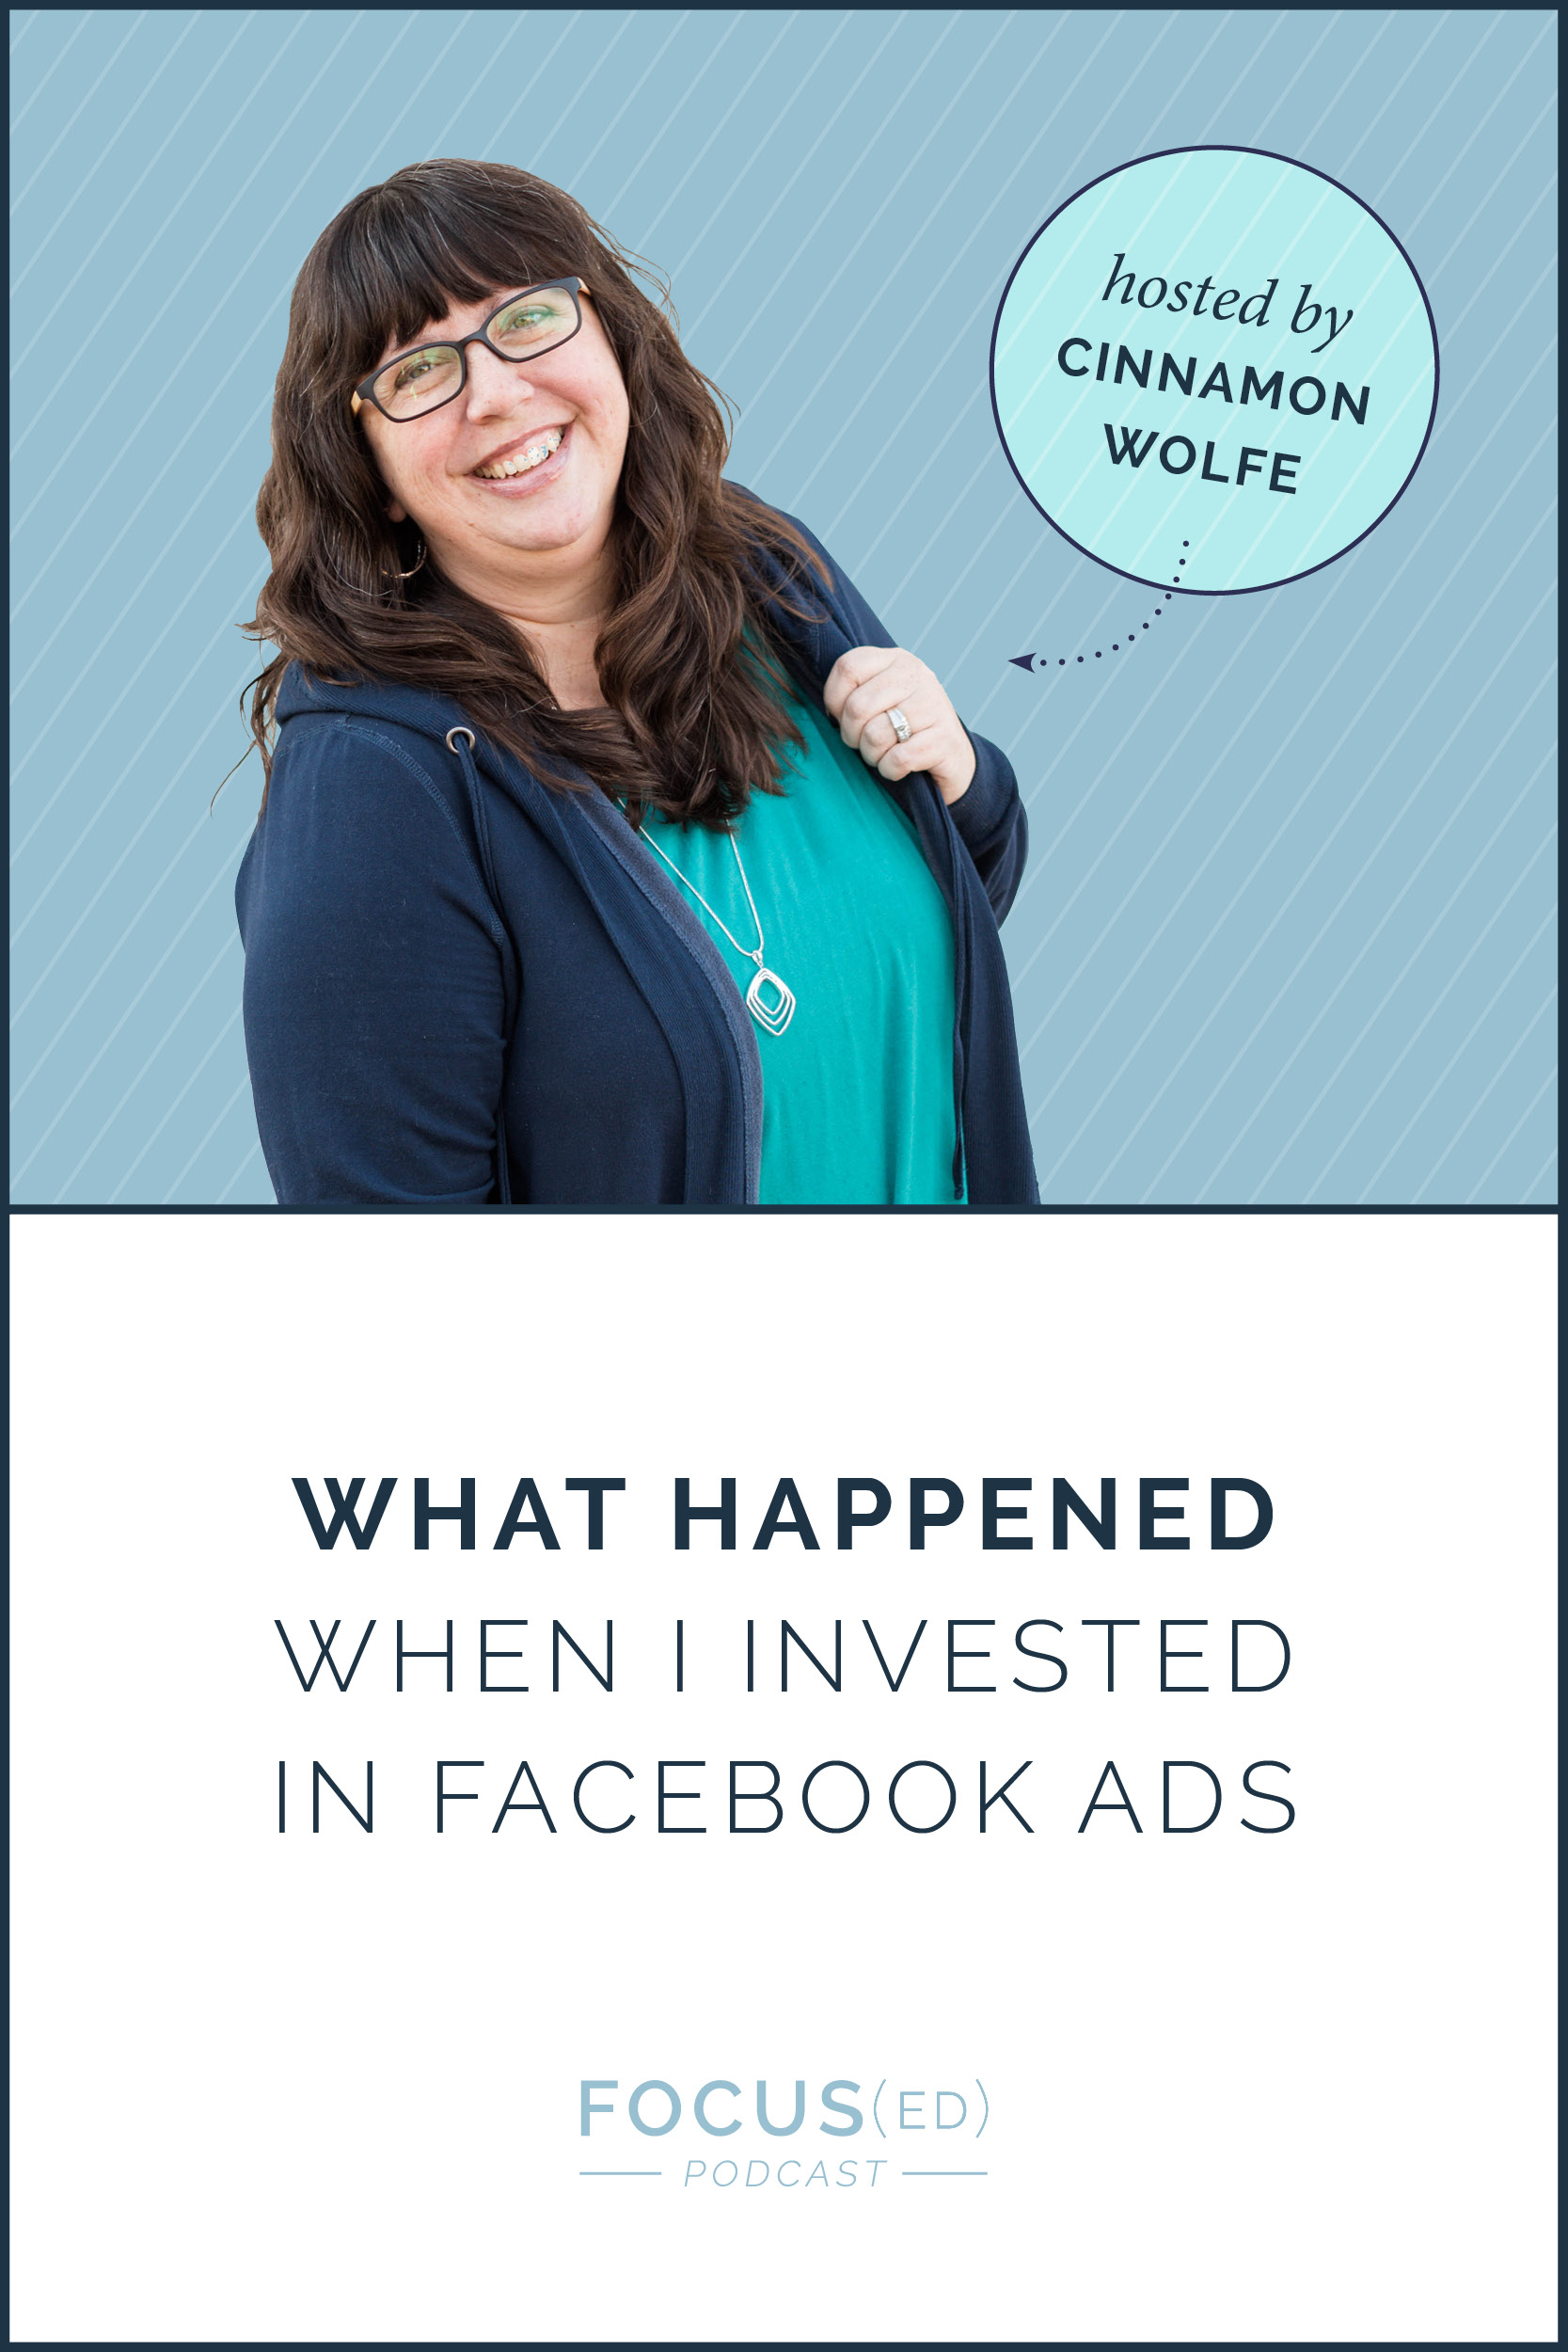 Focused blog - Investing in Facebook Ads2.jpg